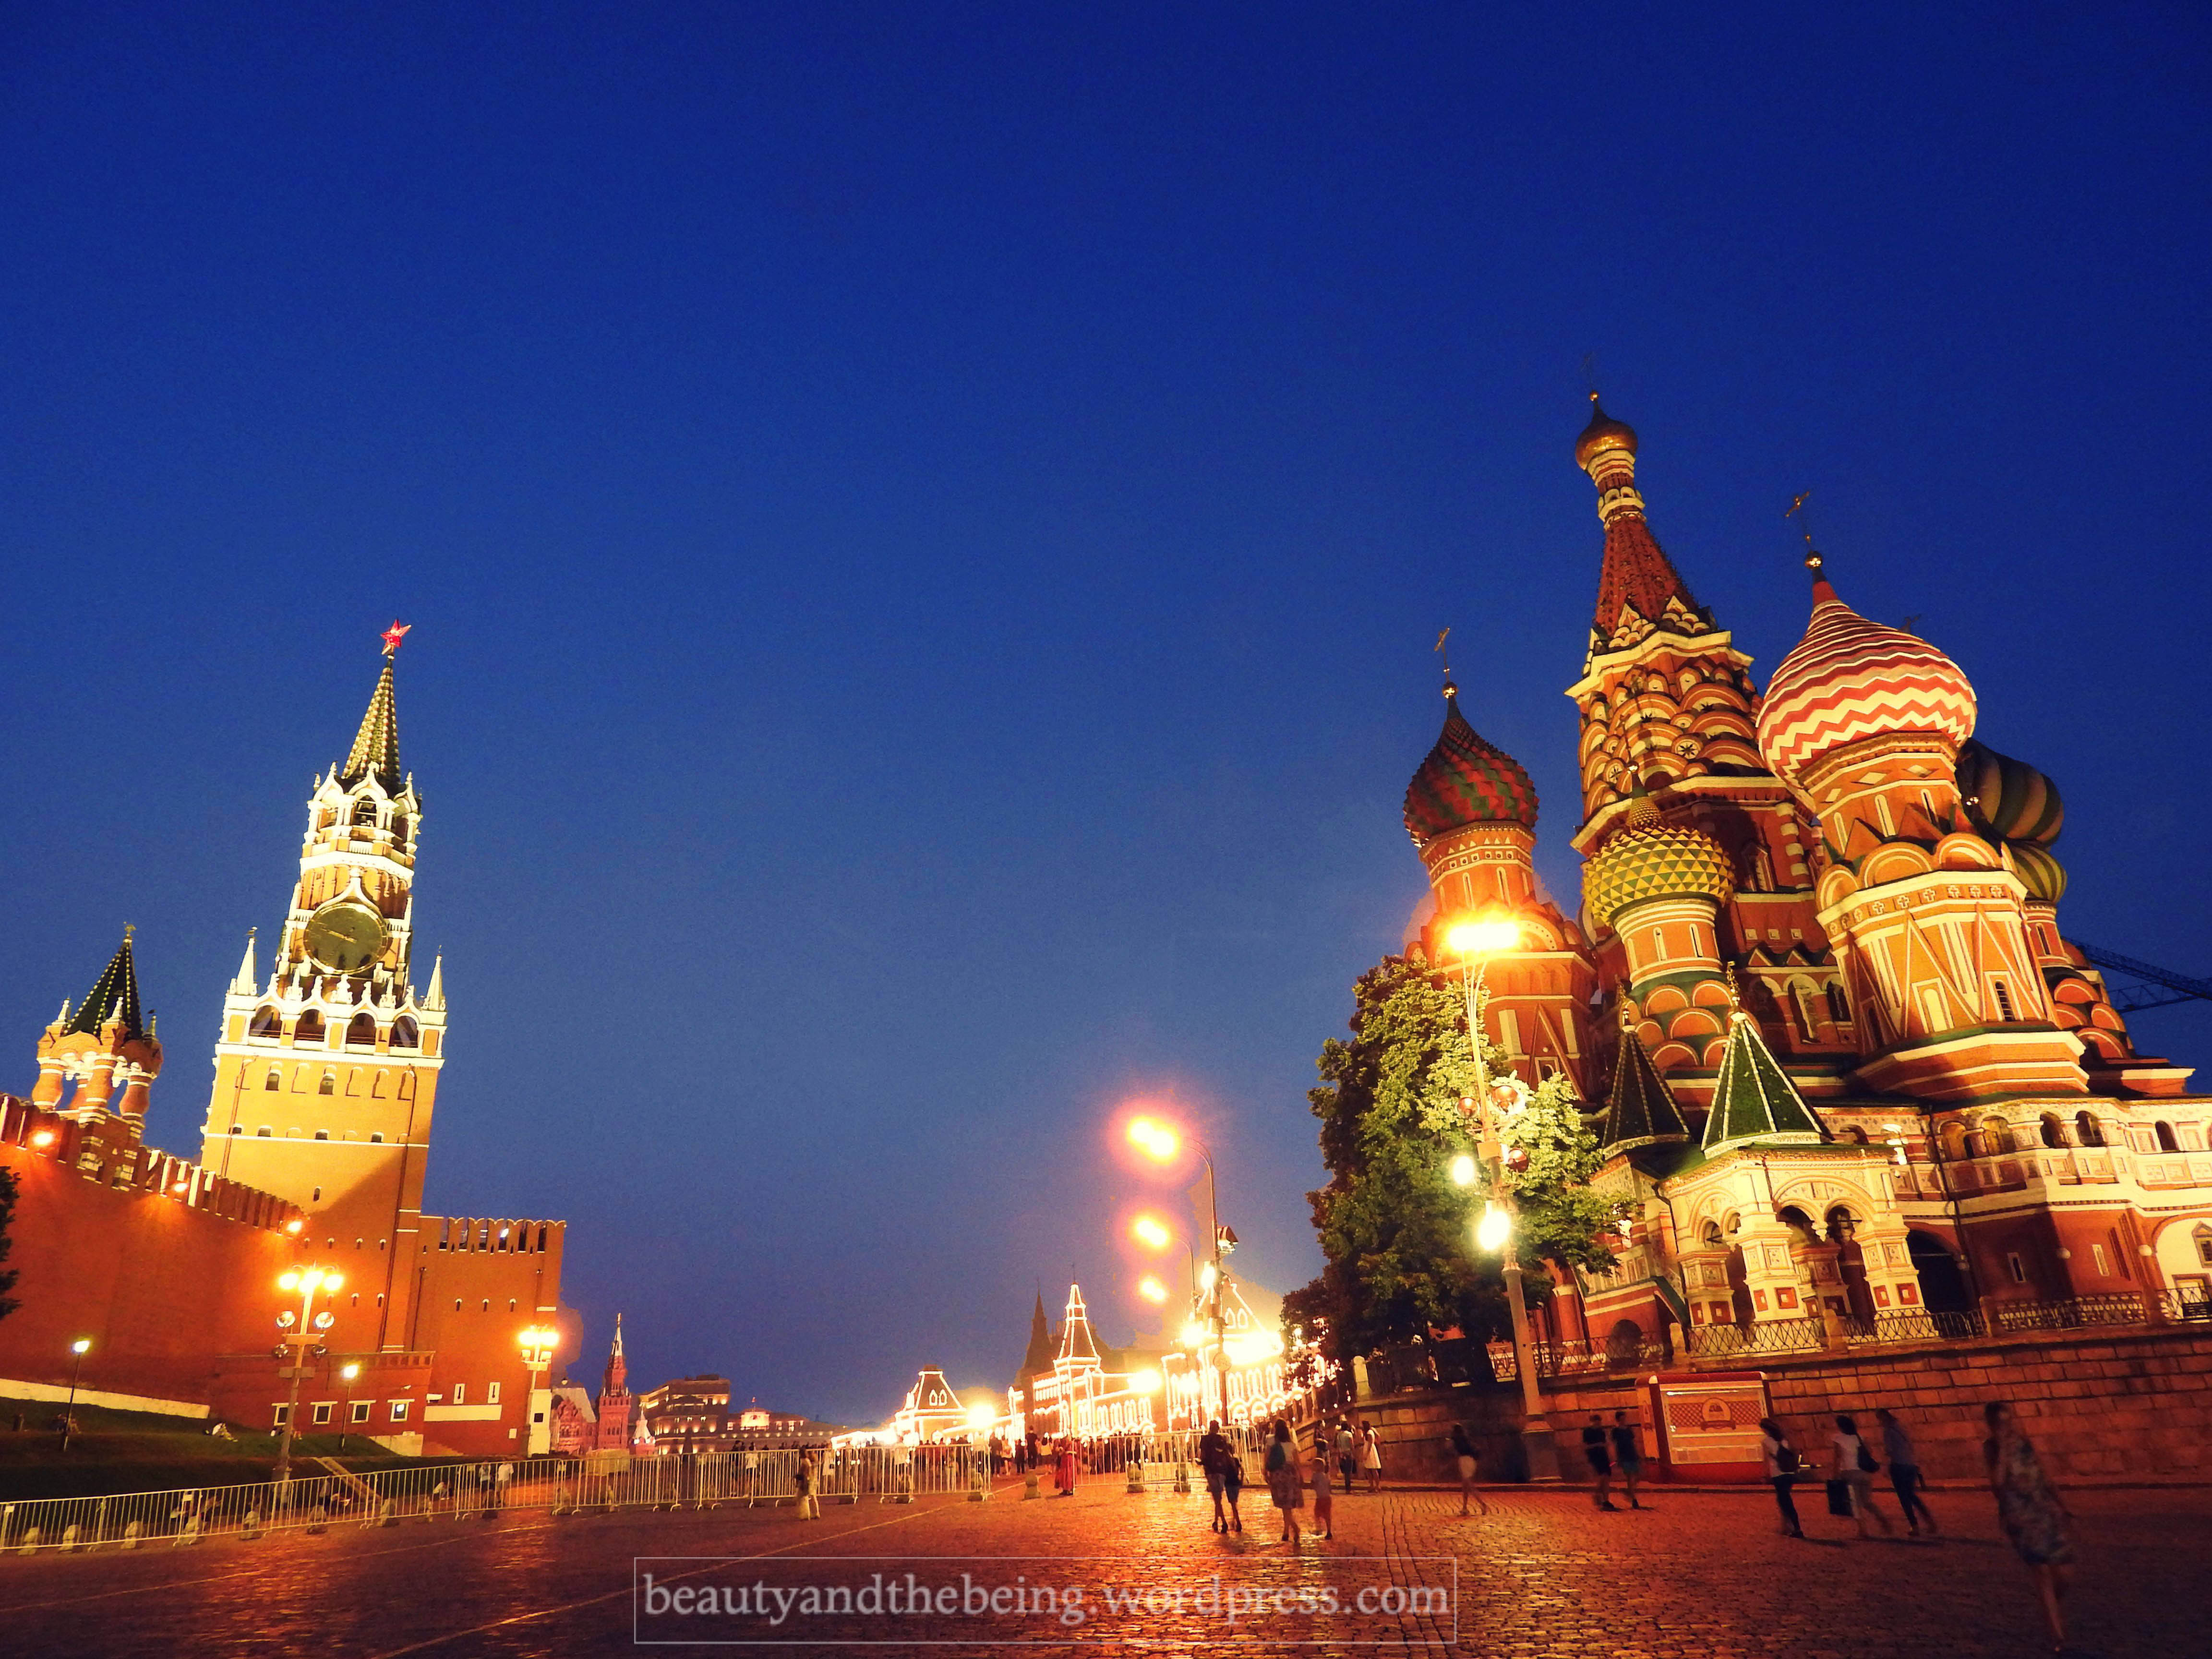 St. Basil's cathedral and the Spasskaya Tower.